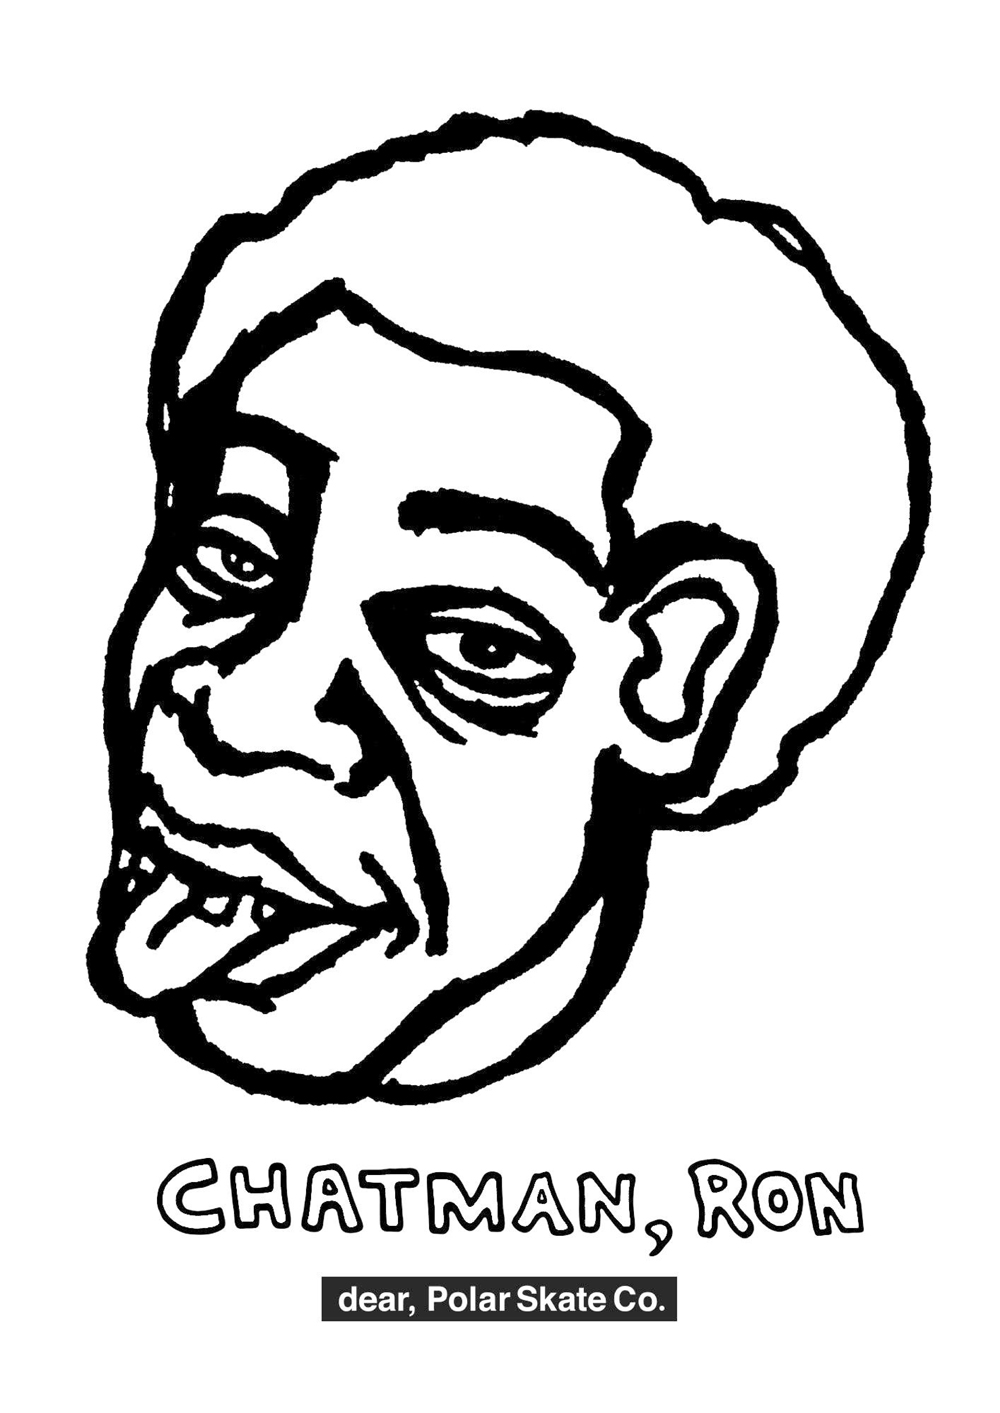 Ron-Chatman-_-Dear-_-Polarskateco1